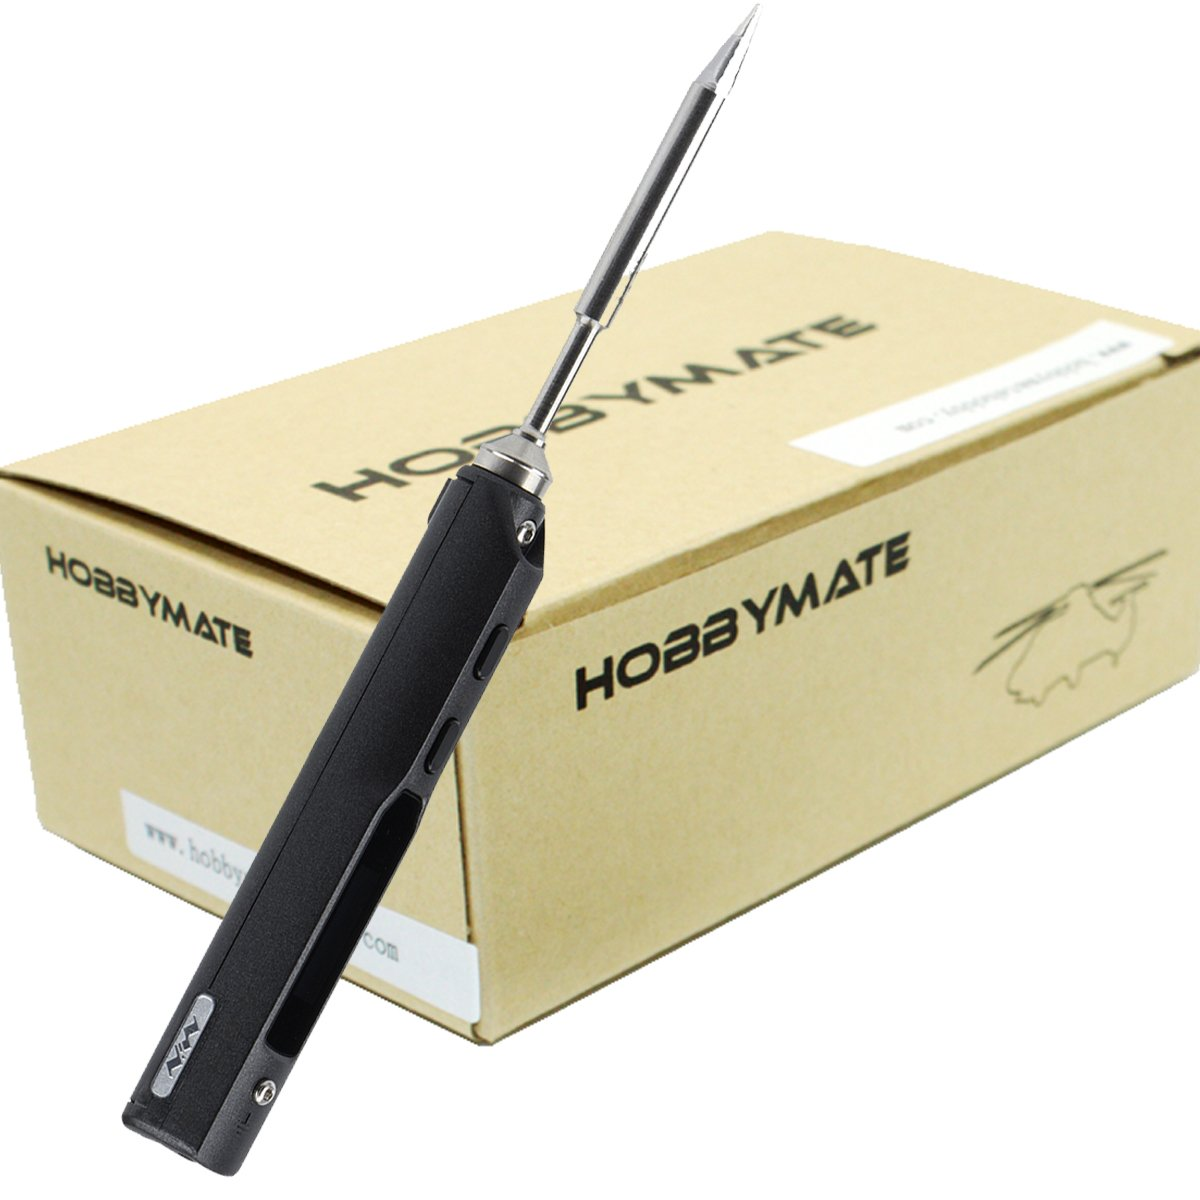 HOBBYMATE TS100 Pocket size Portable Solder Iron w OLED Display Support AC DC Input Fast Heating Soldering Iron B2 tip